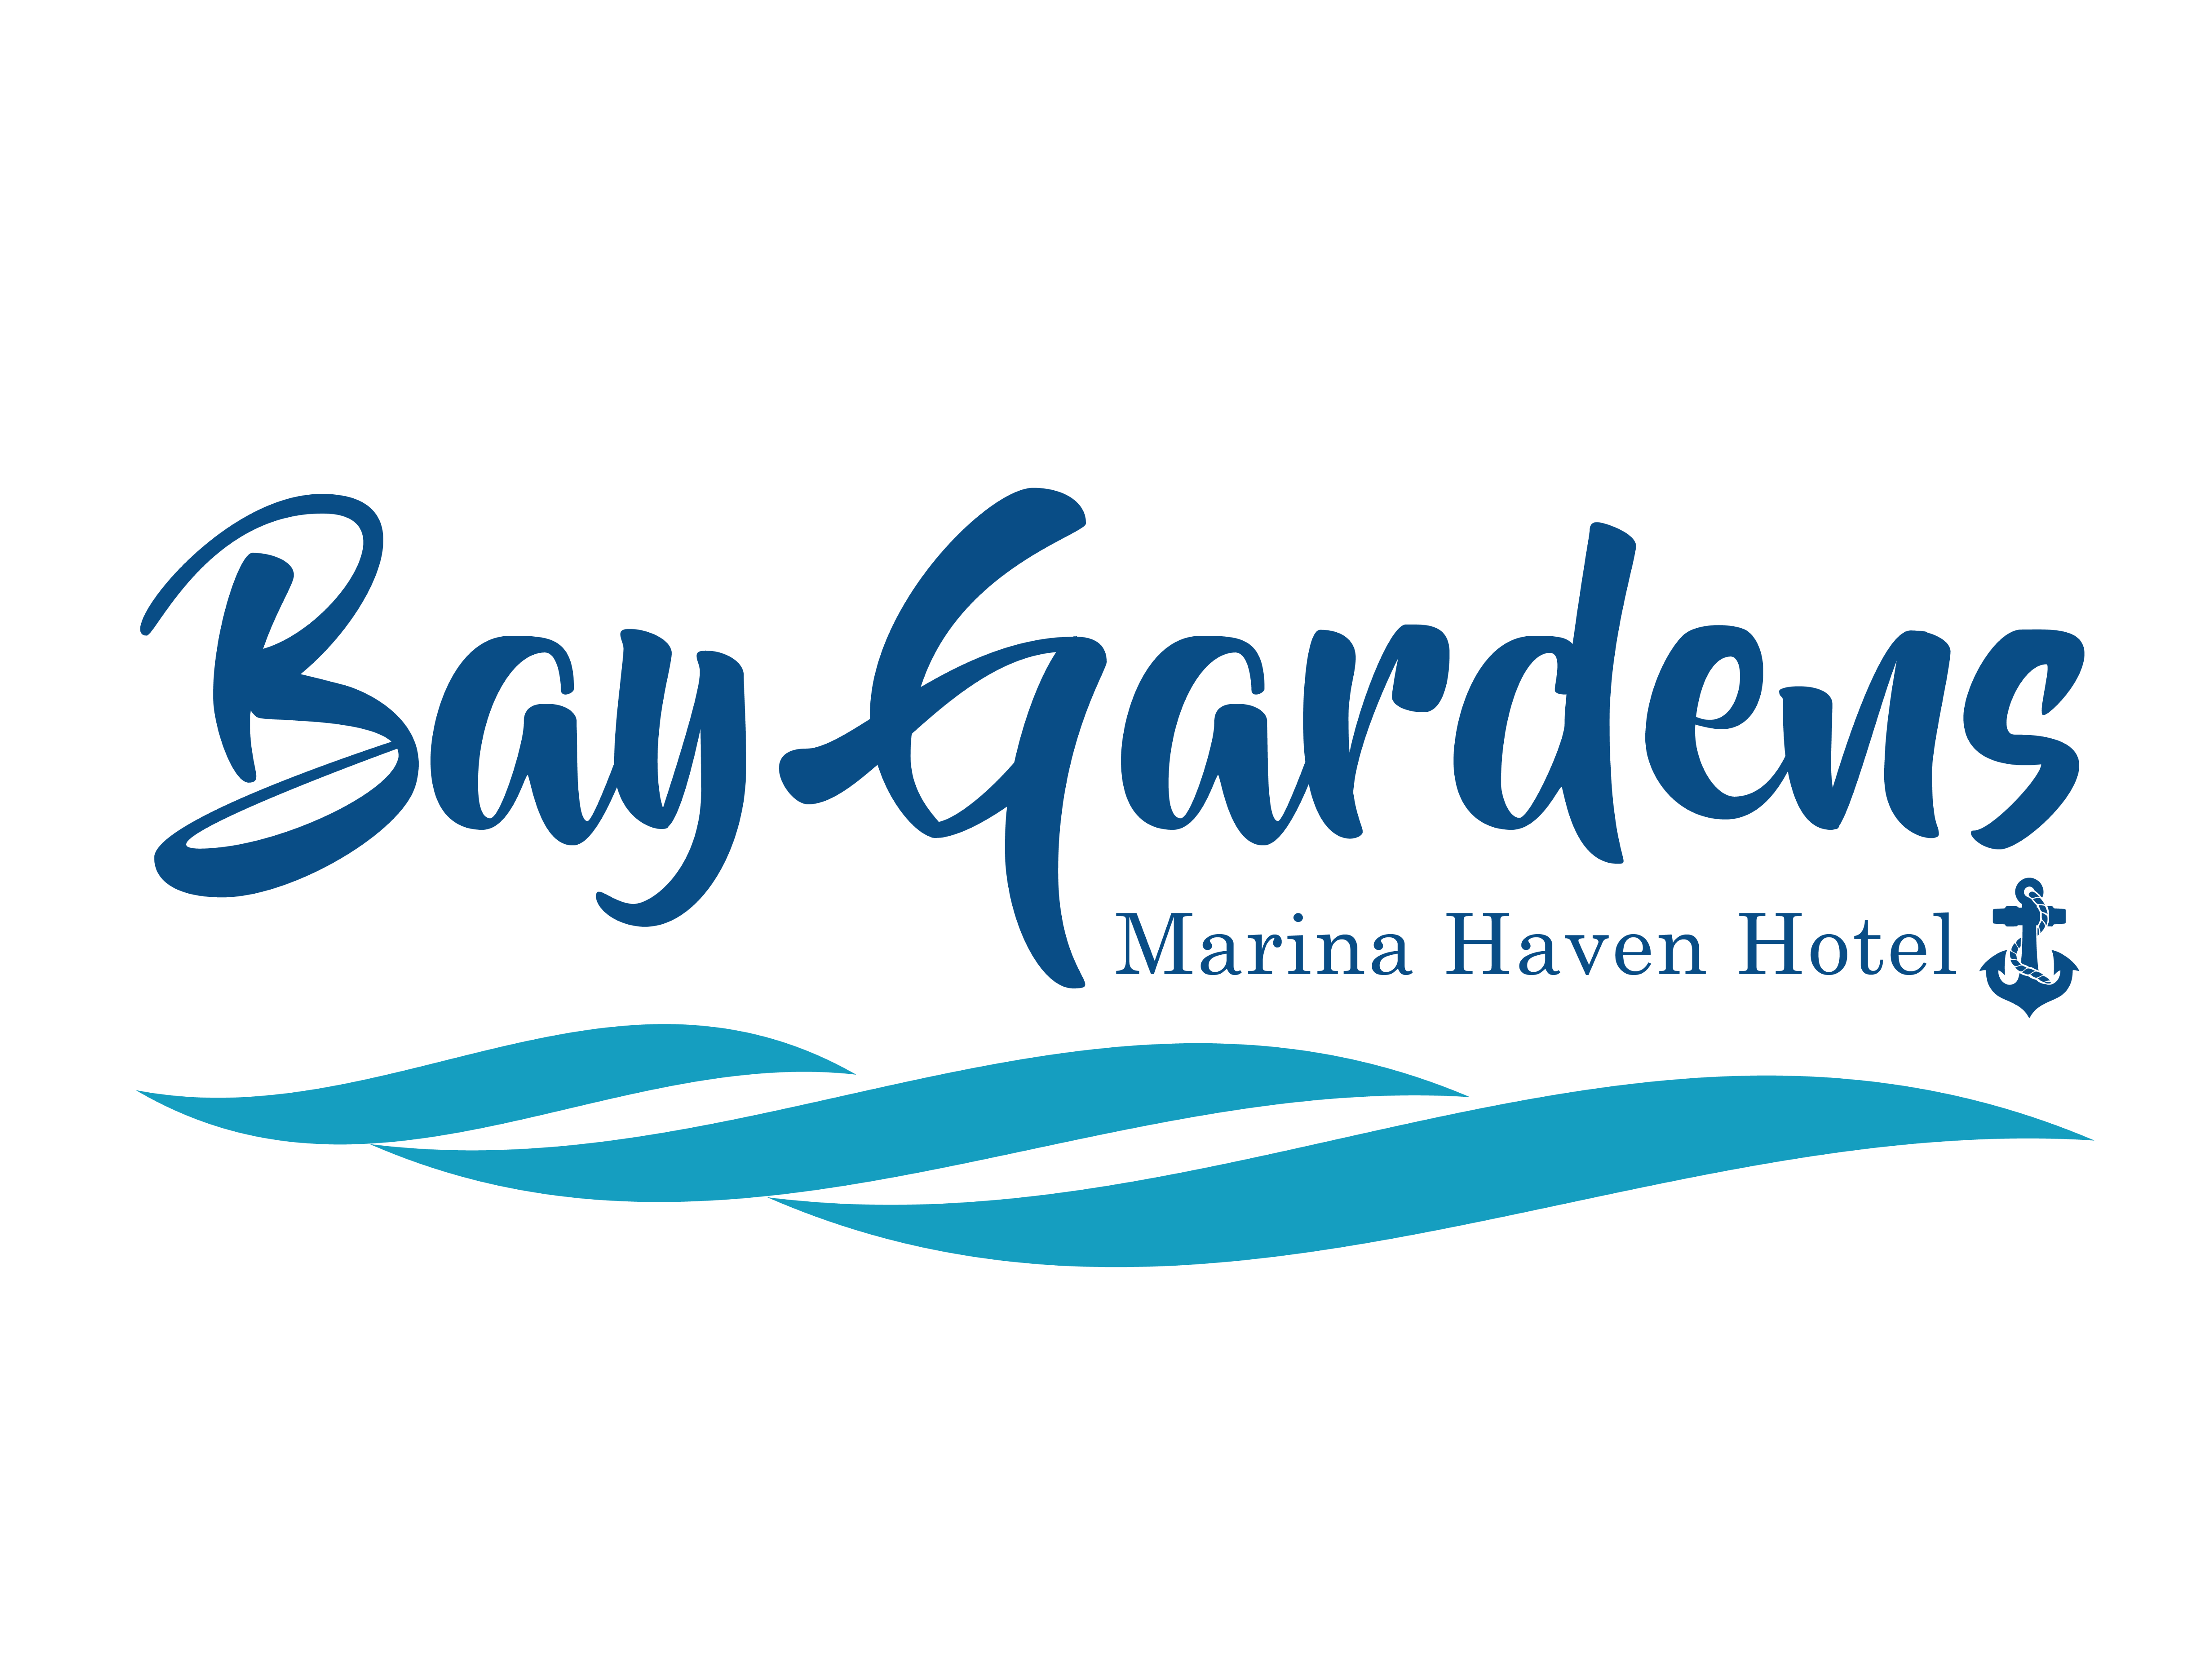 Bay Gardens Marina Haven